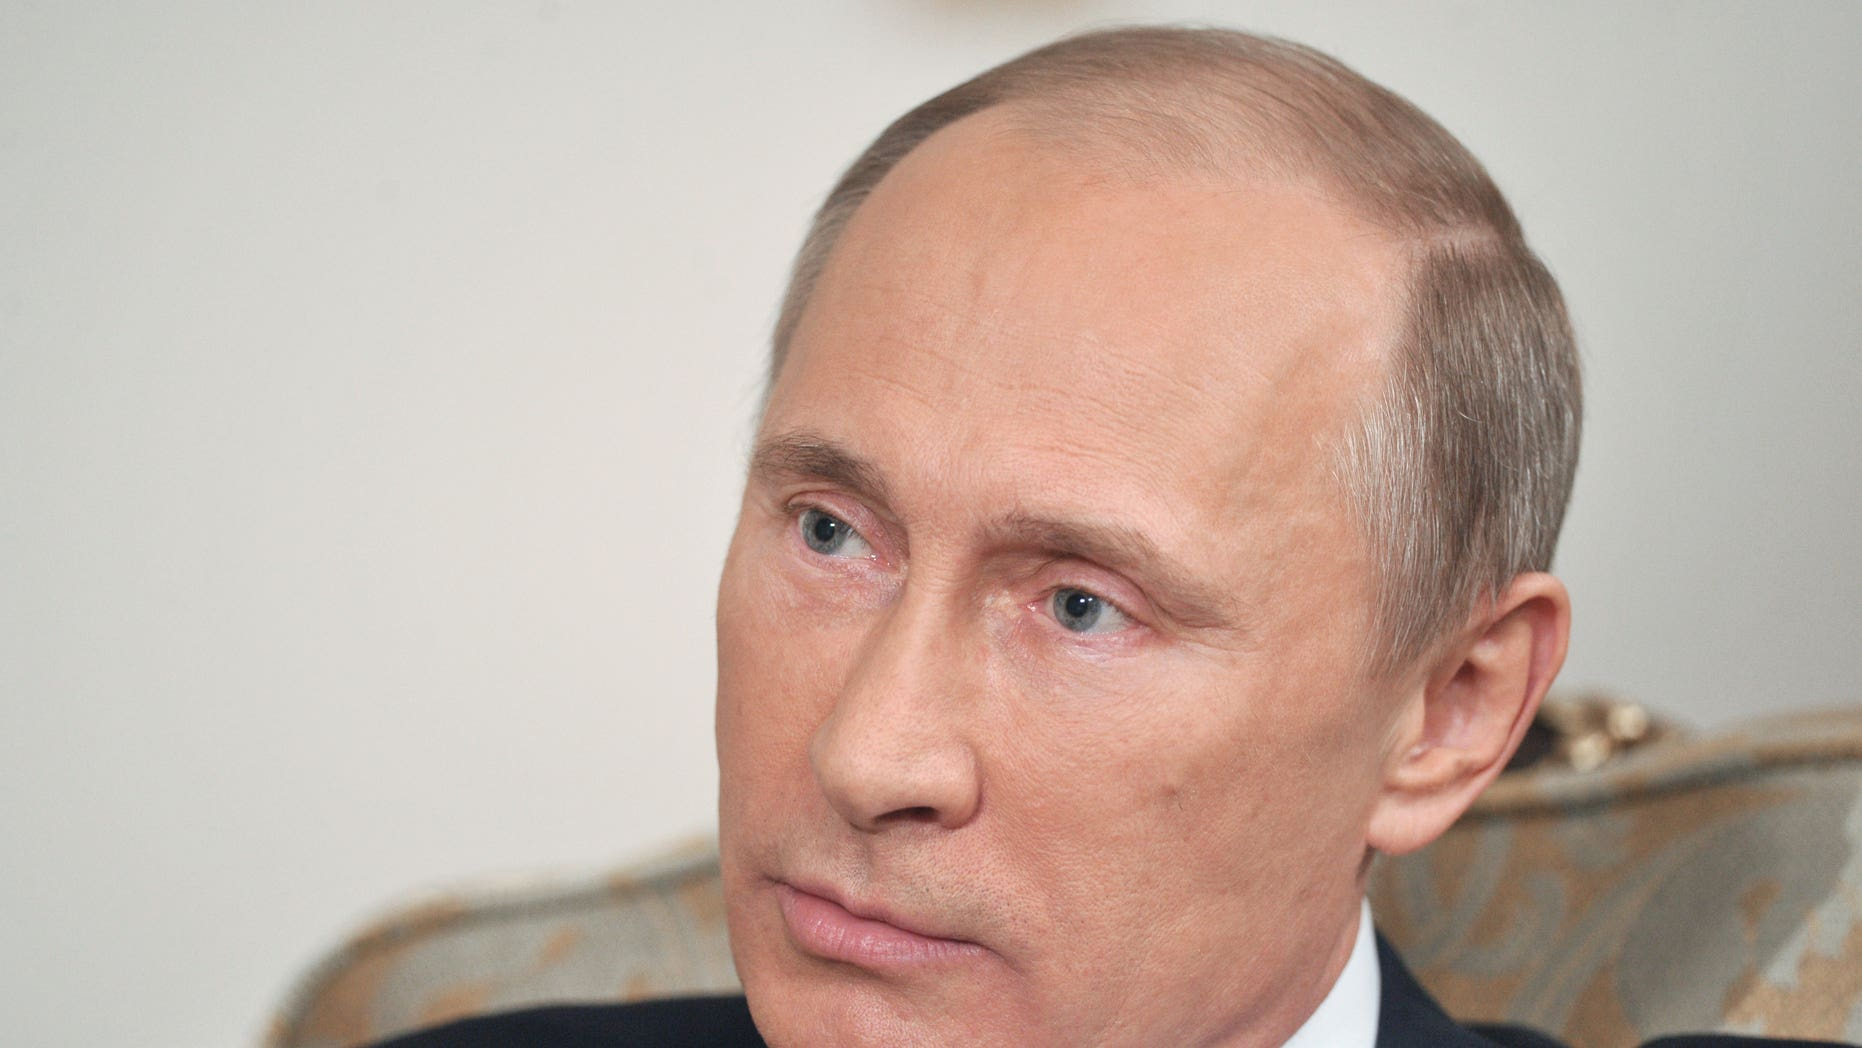 April 2, 2013: Russian President Vladimir Putin speaks during an interview with the German ARD television in the Novo-Ogaryovo residence outside Moscow, Russia.